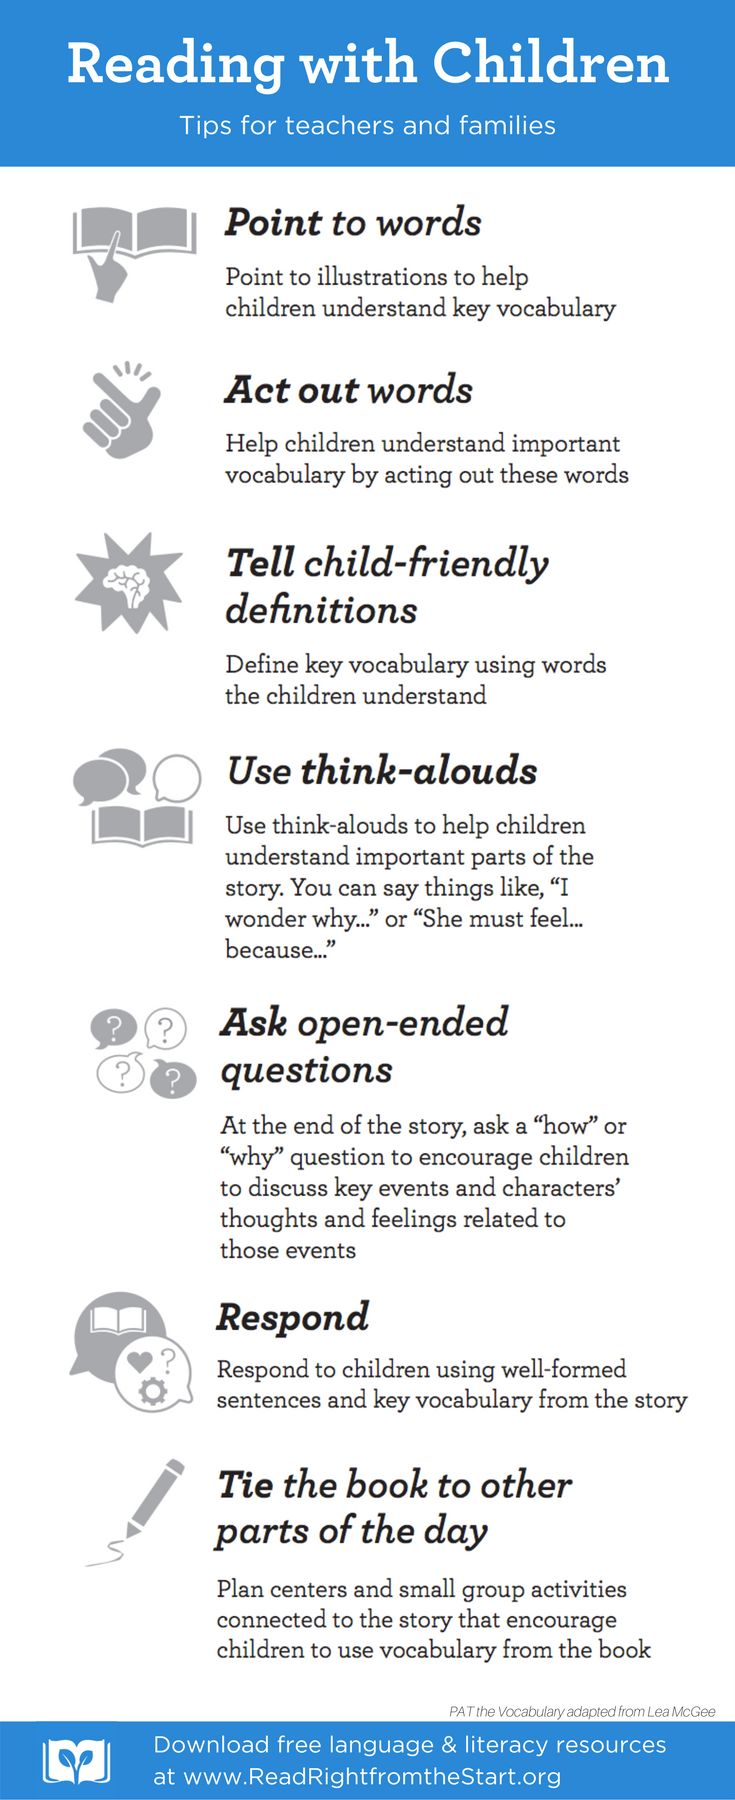 Seven tips for teachers and families to read with children and keep them learning all year long. Visit www.readrightfromthestart.org for more early education resources and reading activities.